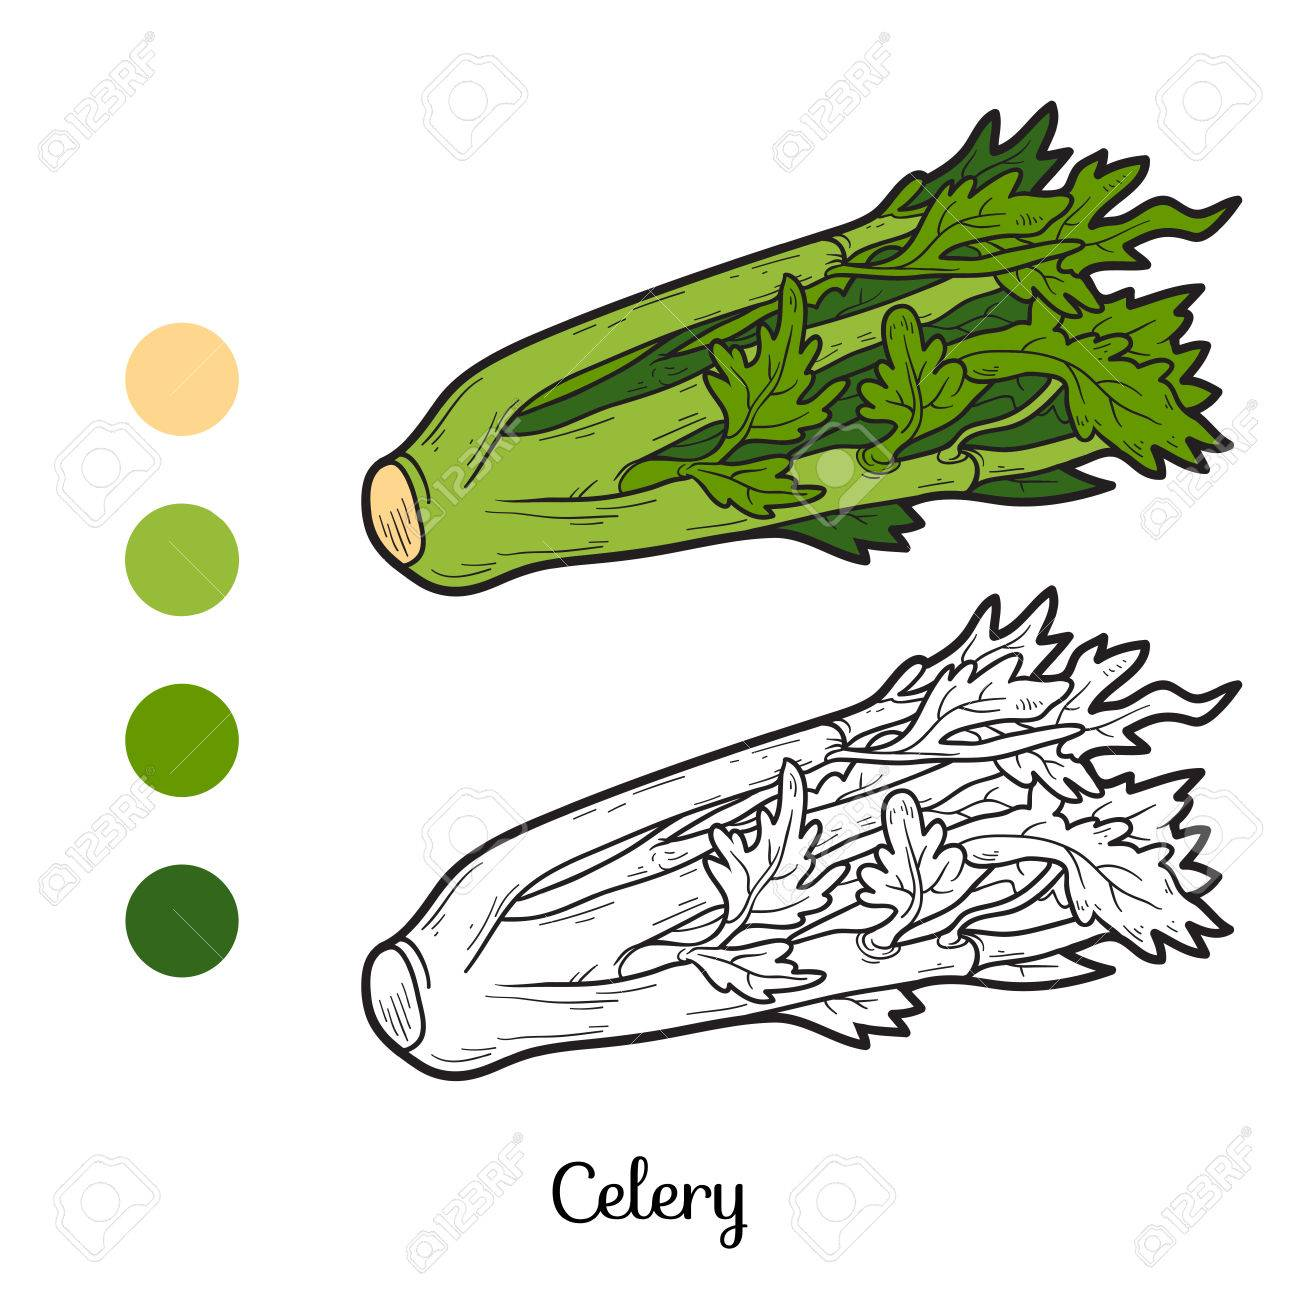 Coloring Book For Children: Fruits And Vegetables (celery) Royalty ...